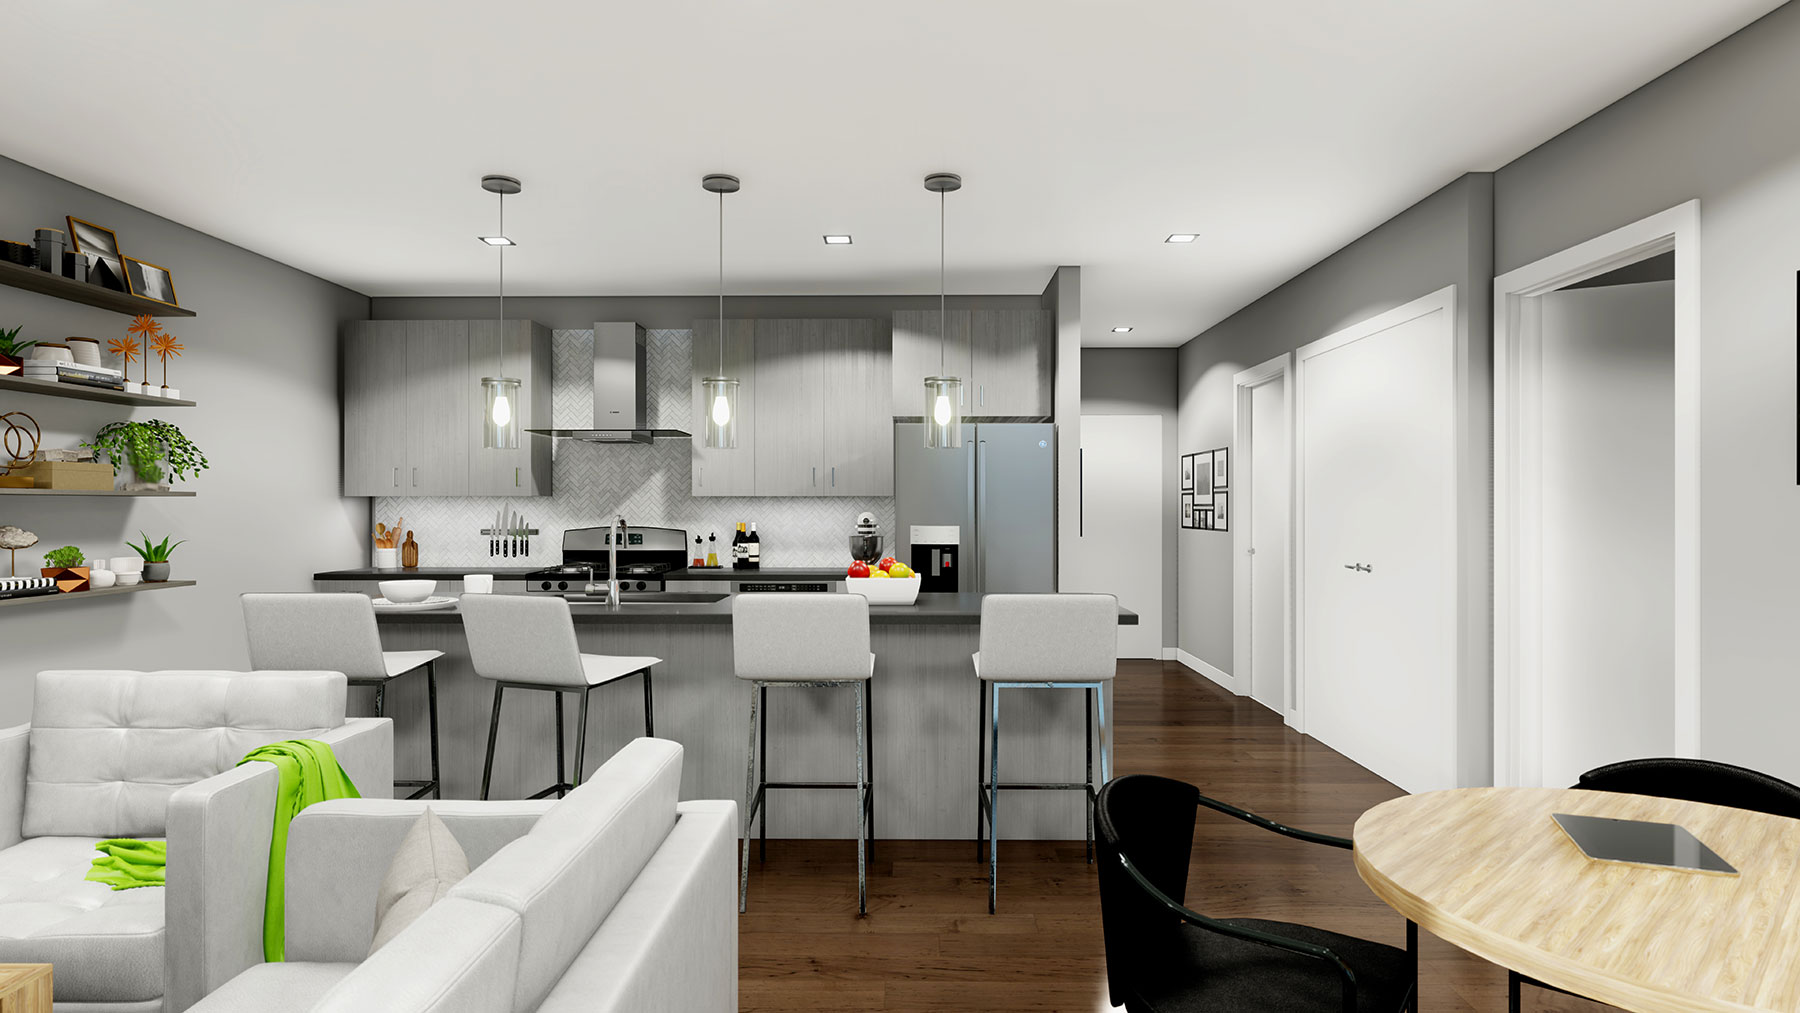 A rendering of a unit kitchen as seen from the living room